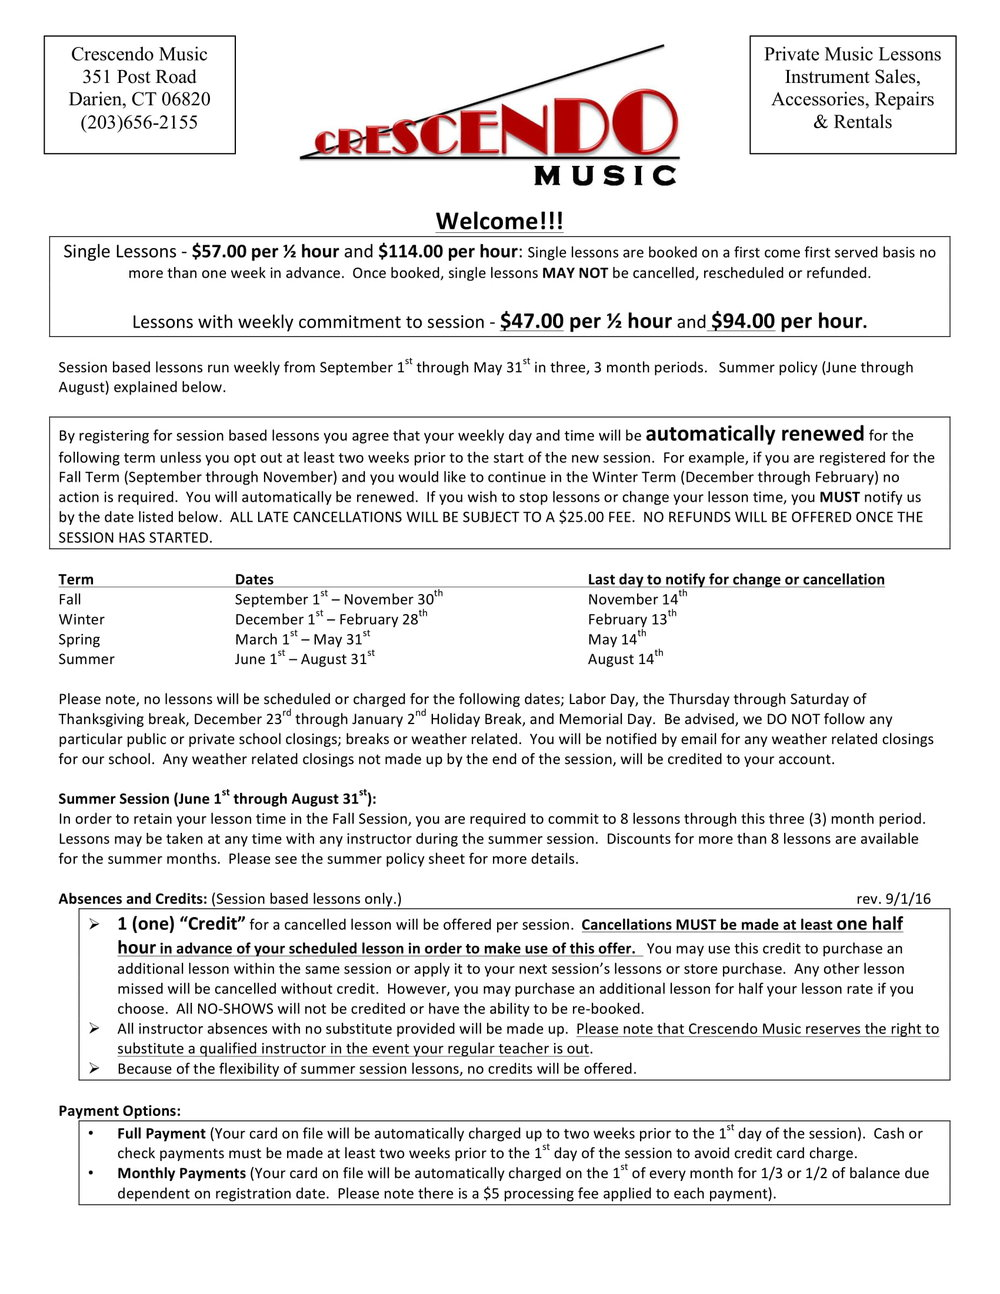 By registering for lessons, you agree to all the policies set forth by Crescendo Music, LLC.